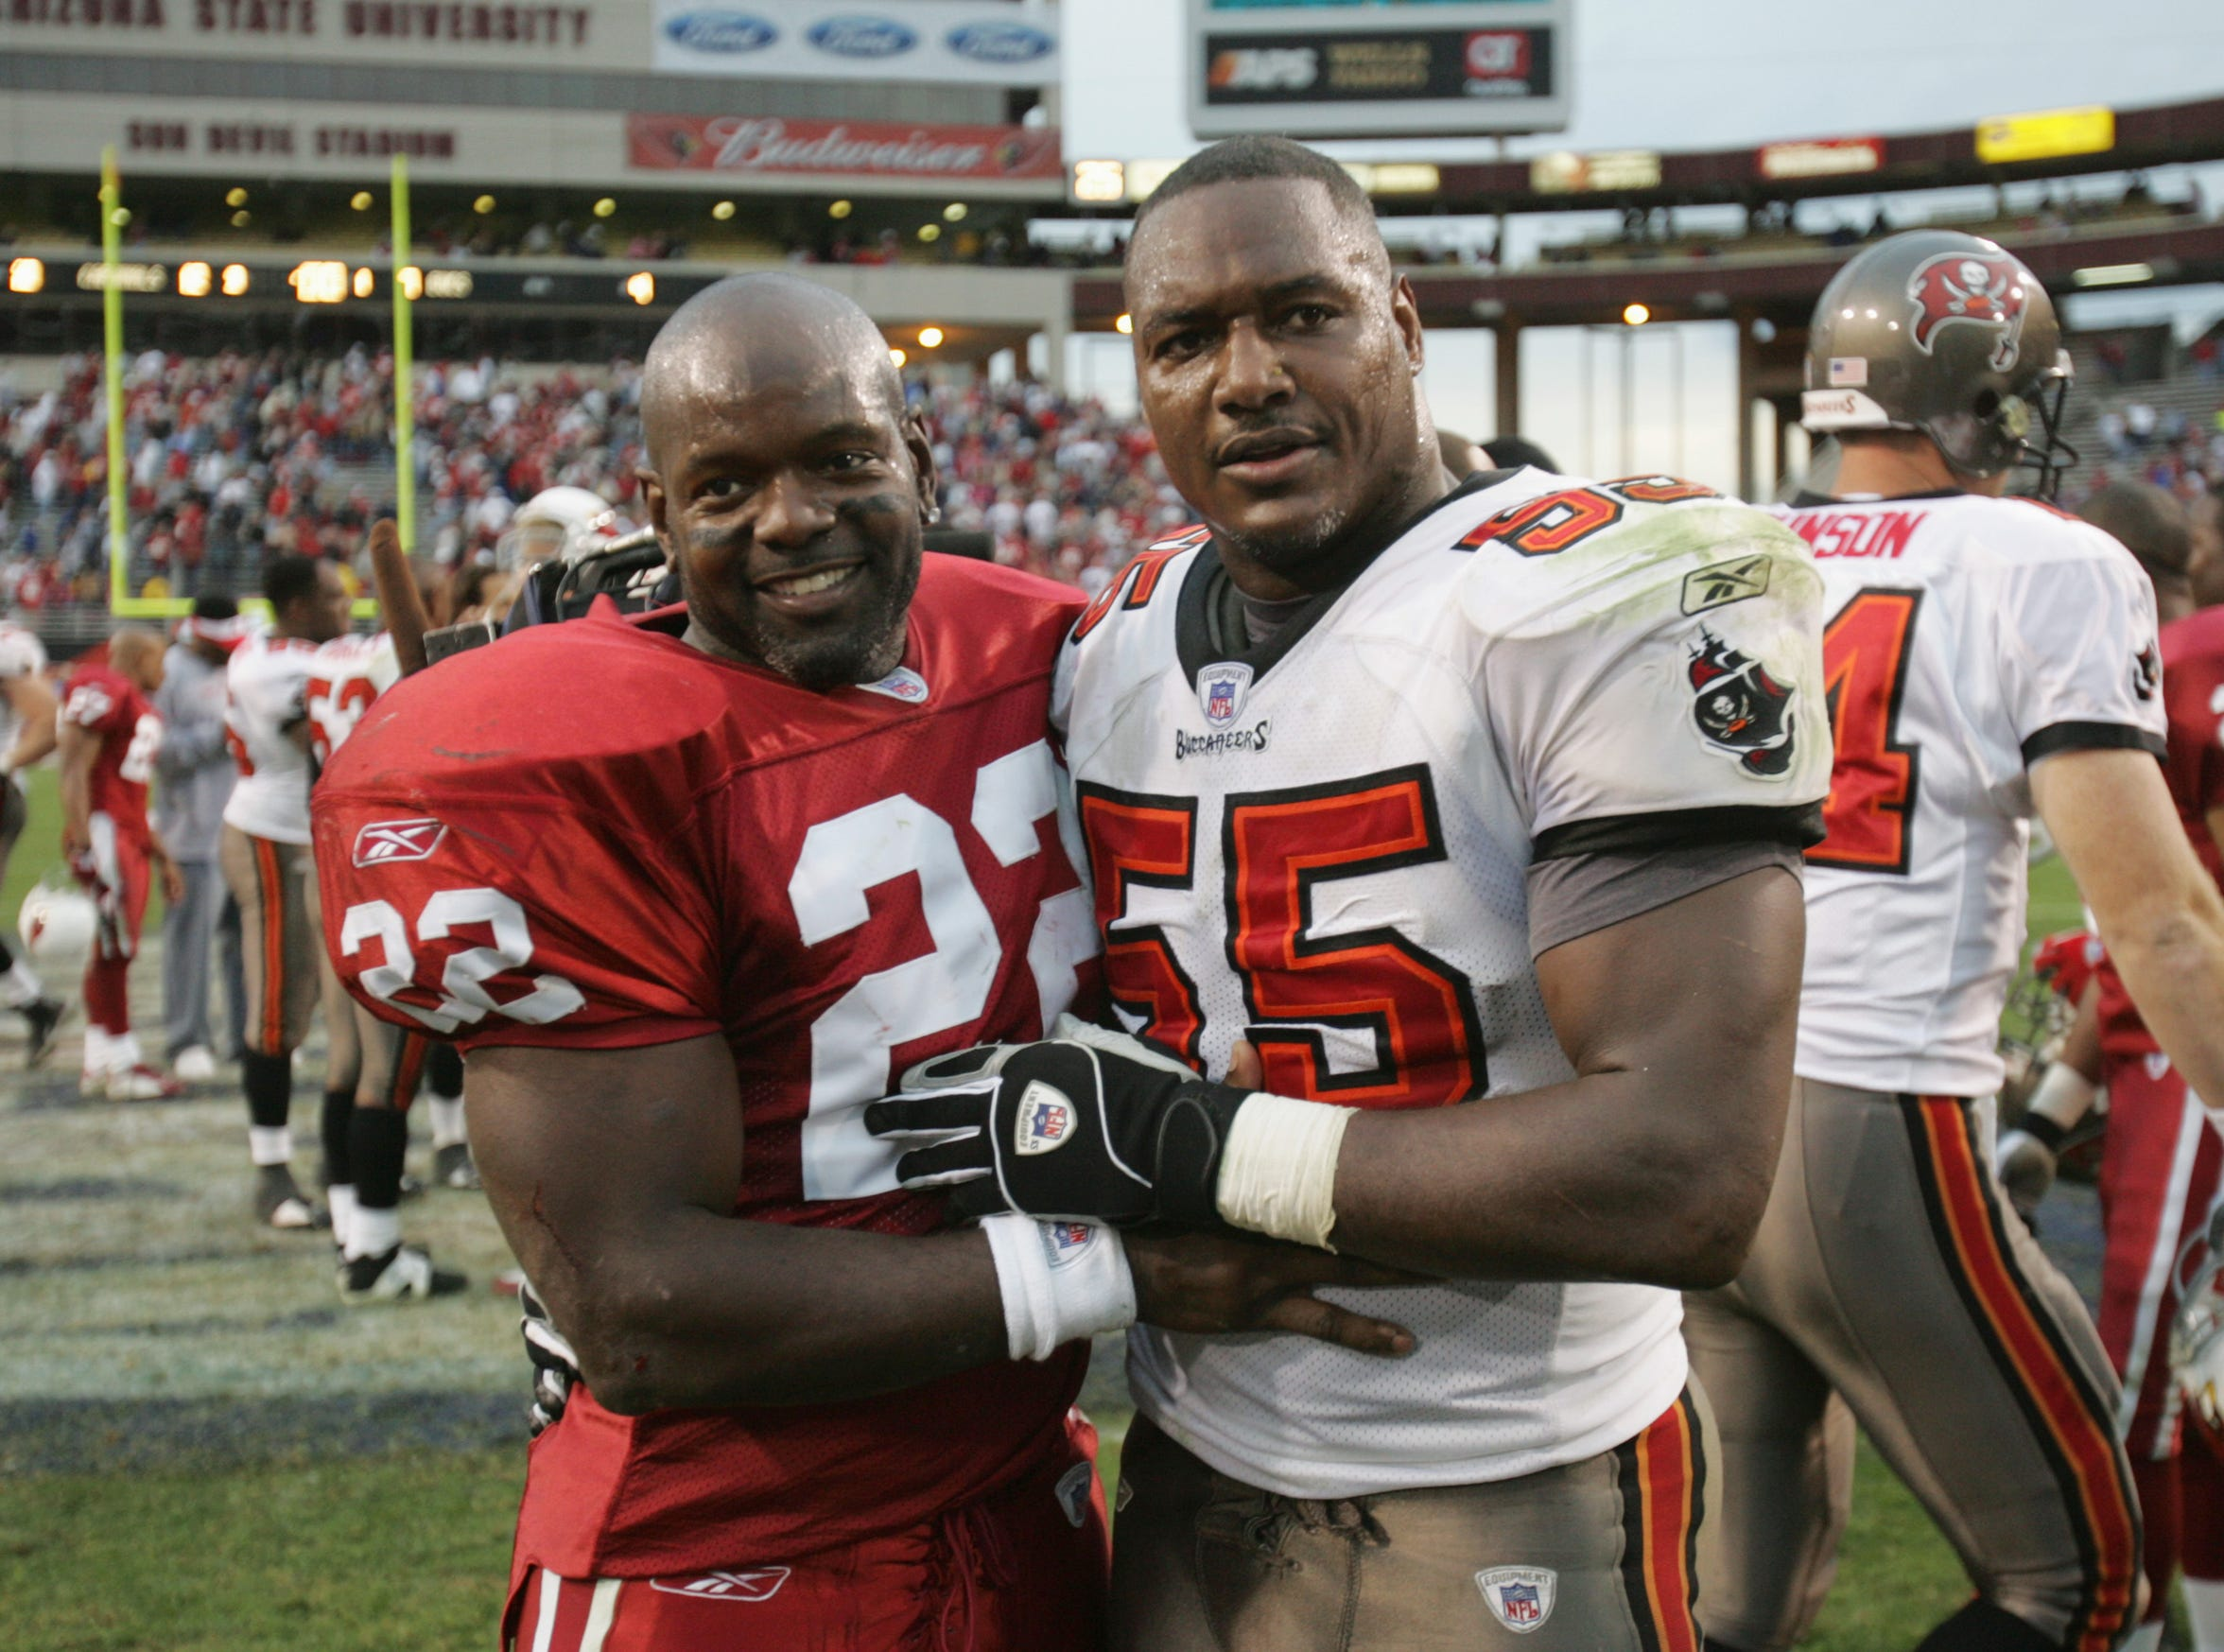 TEMPE, AZ - JANUARY 2:  Running back Emmitt Smith #22 of the Arizona Cardinals poses for a picture with linebacker Derrick Brooks #55 of the Tampa Bay Buccaneers during the game at Sun Devil Stadium on January 2, 2005 in Tempe, Arizona. The Cardinals defeated the Buccaneers 12-7. (Photo by Jeff Gross/Getty Images)